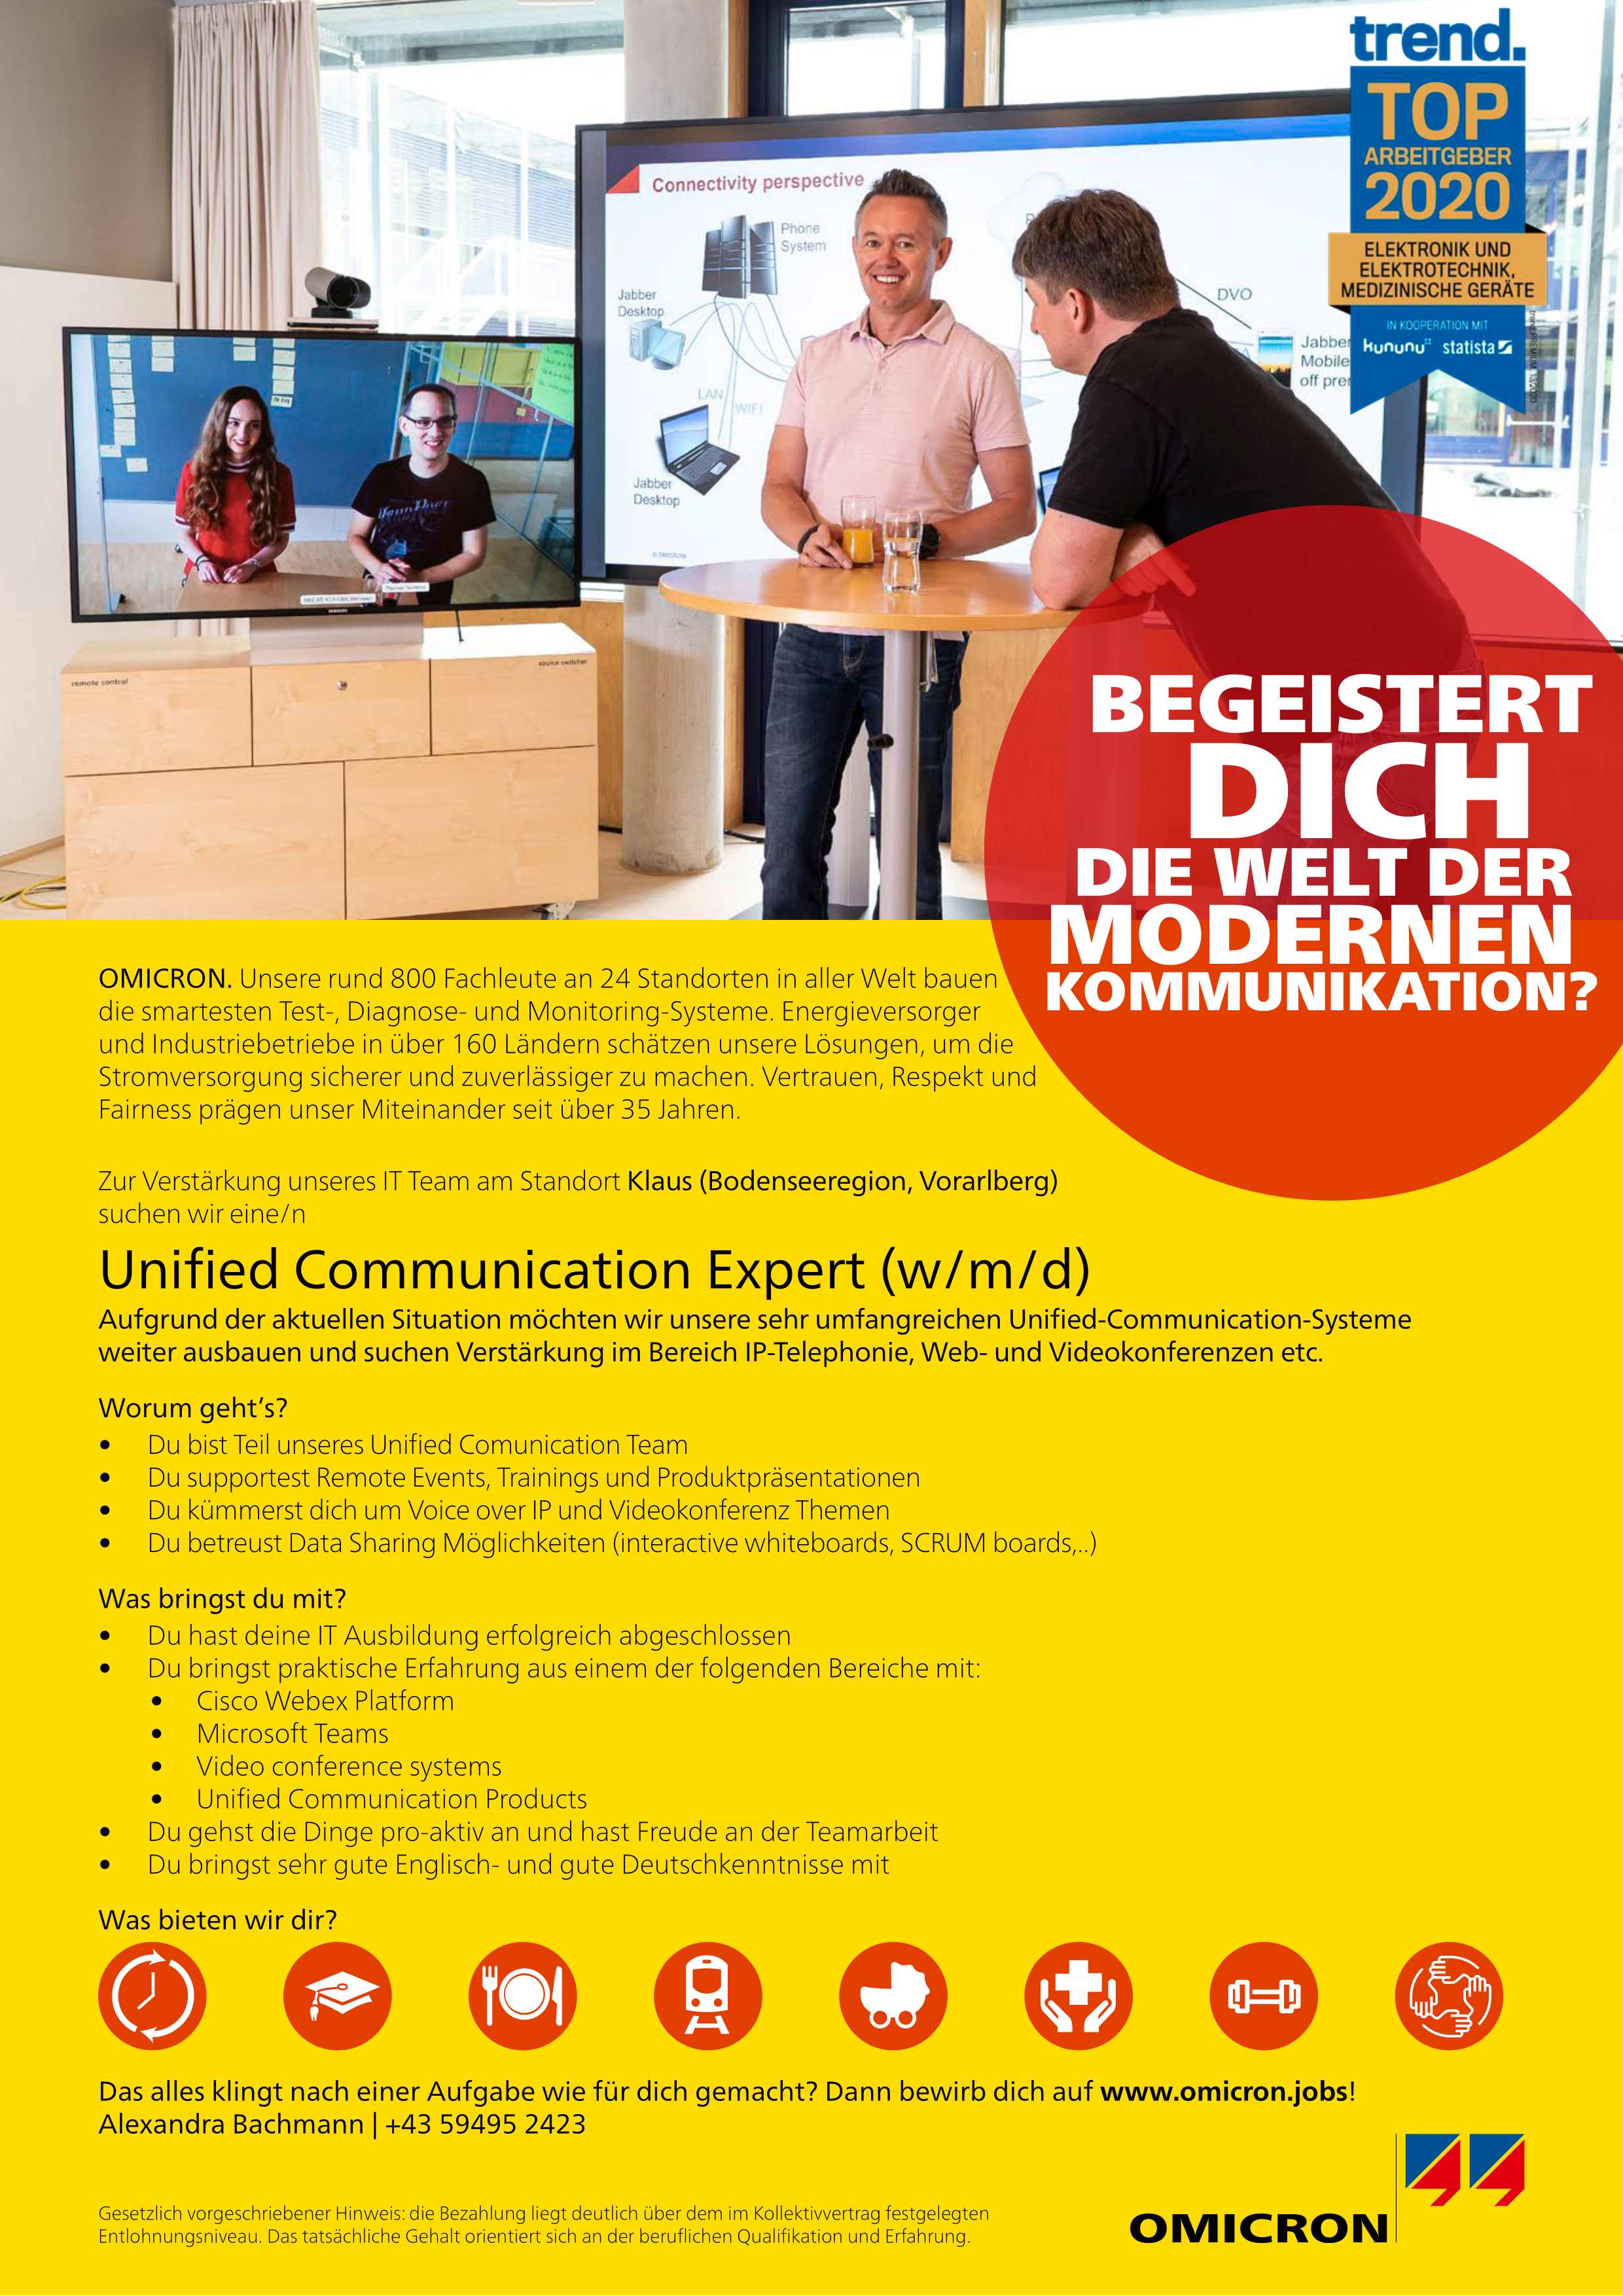 Unified Communication Expert (m/w/d)